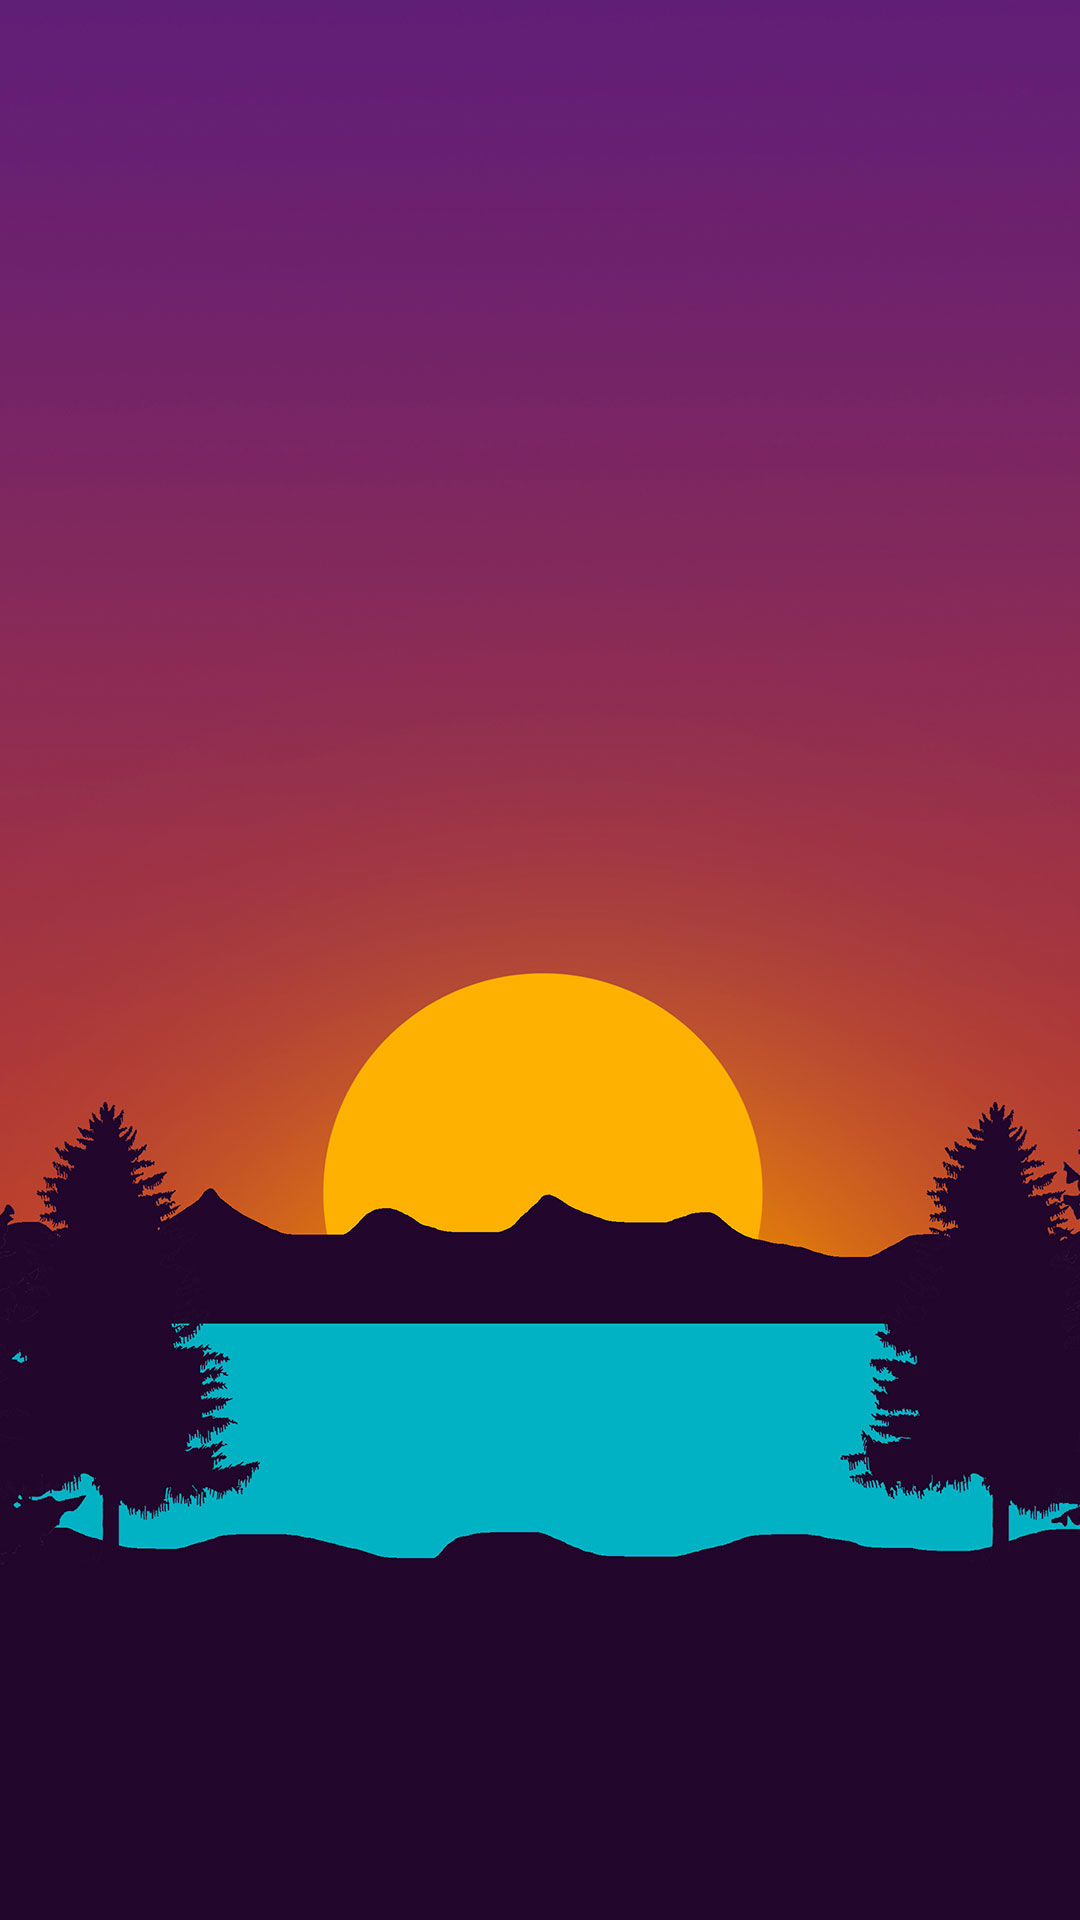 iPhone wallpaper drawing sunset Les 3Wallpapers iPhone du jour (17/04/2018)